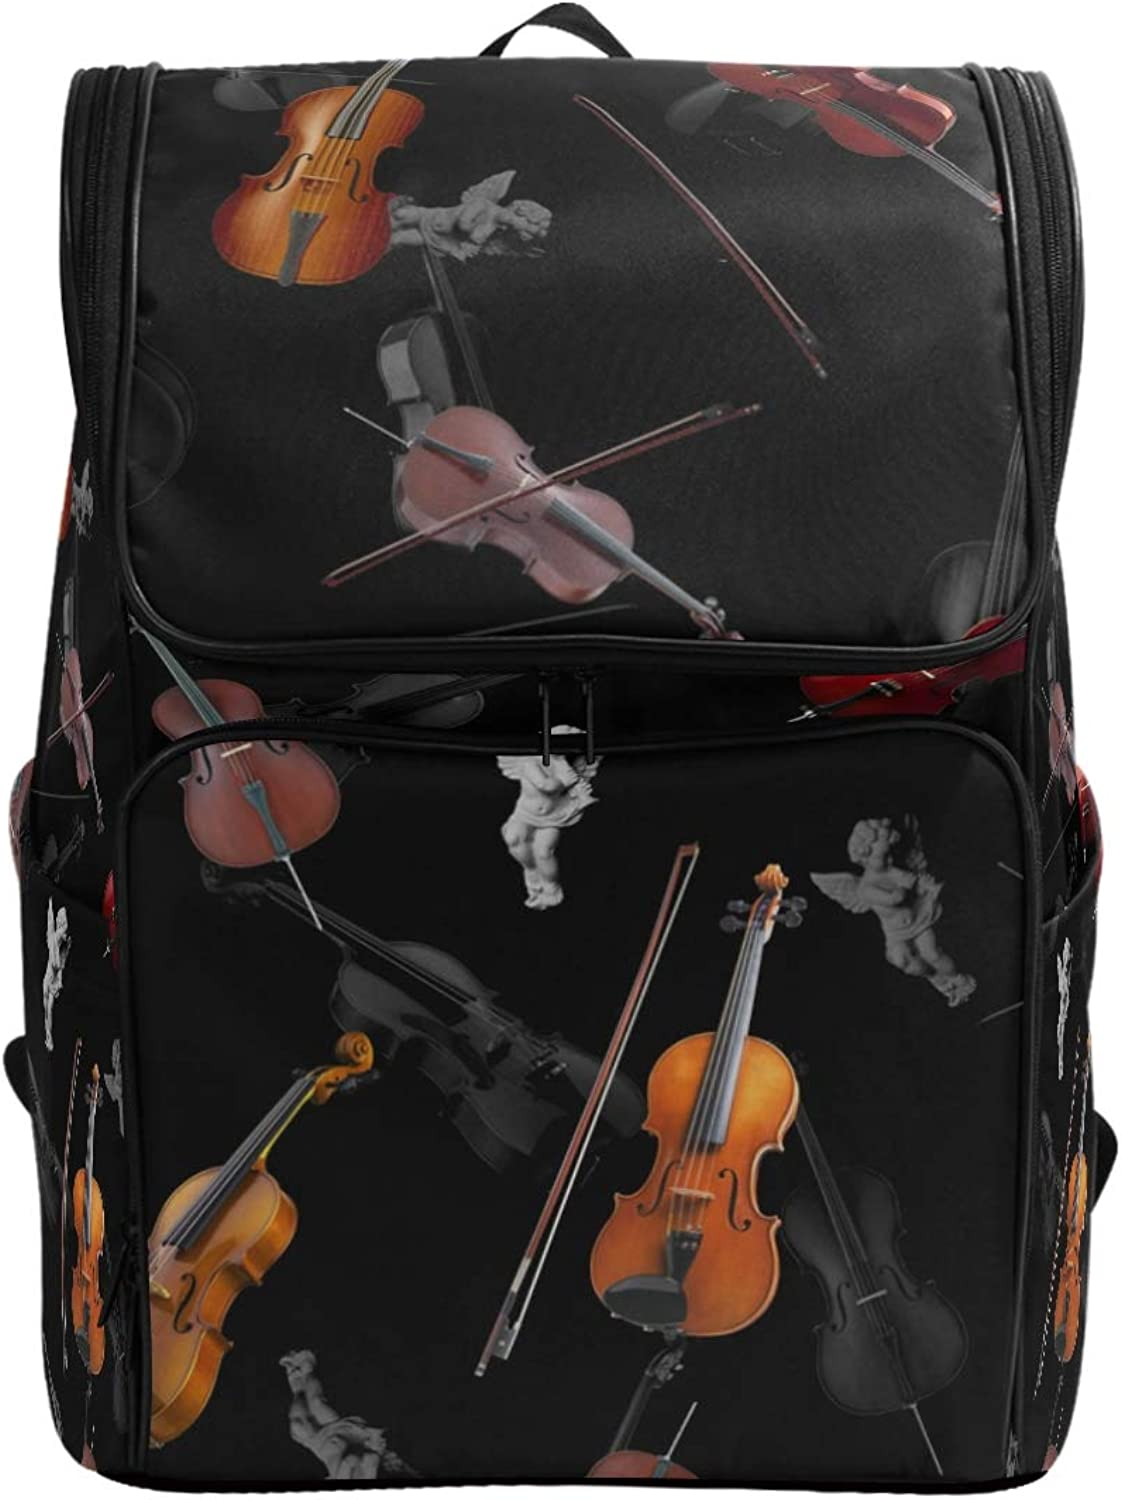 MONTOJ Creative Violins Outdoor Hiking Backpack Hiking & Travelling Backpack with Laptop Compartment & Camping Backpack